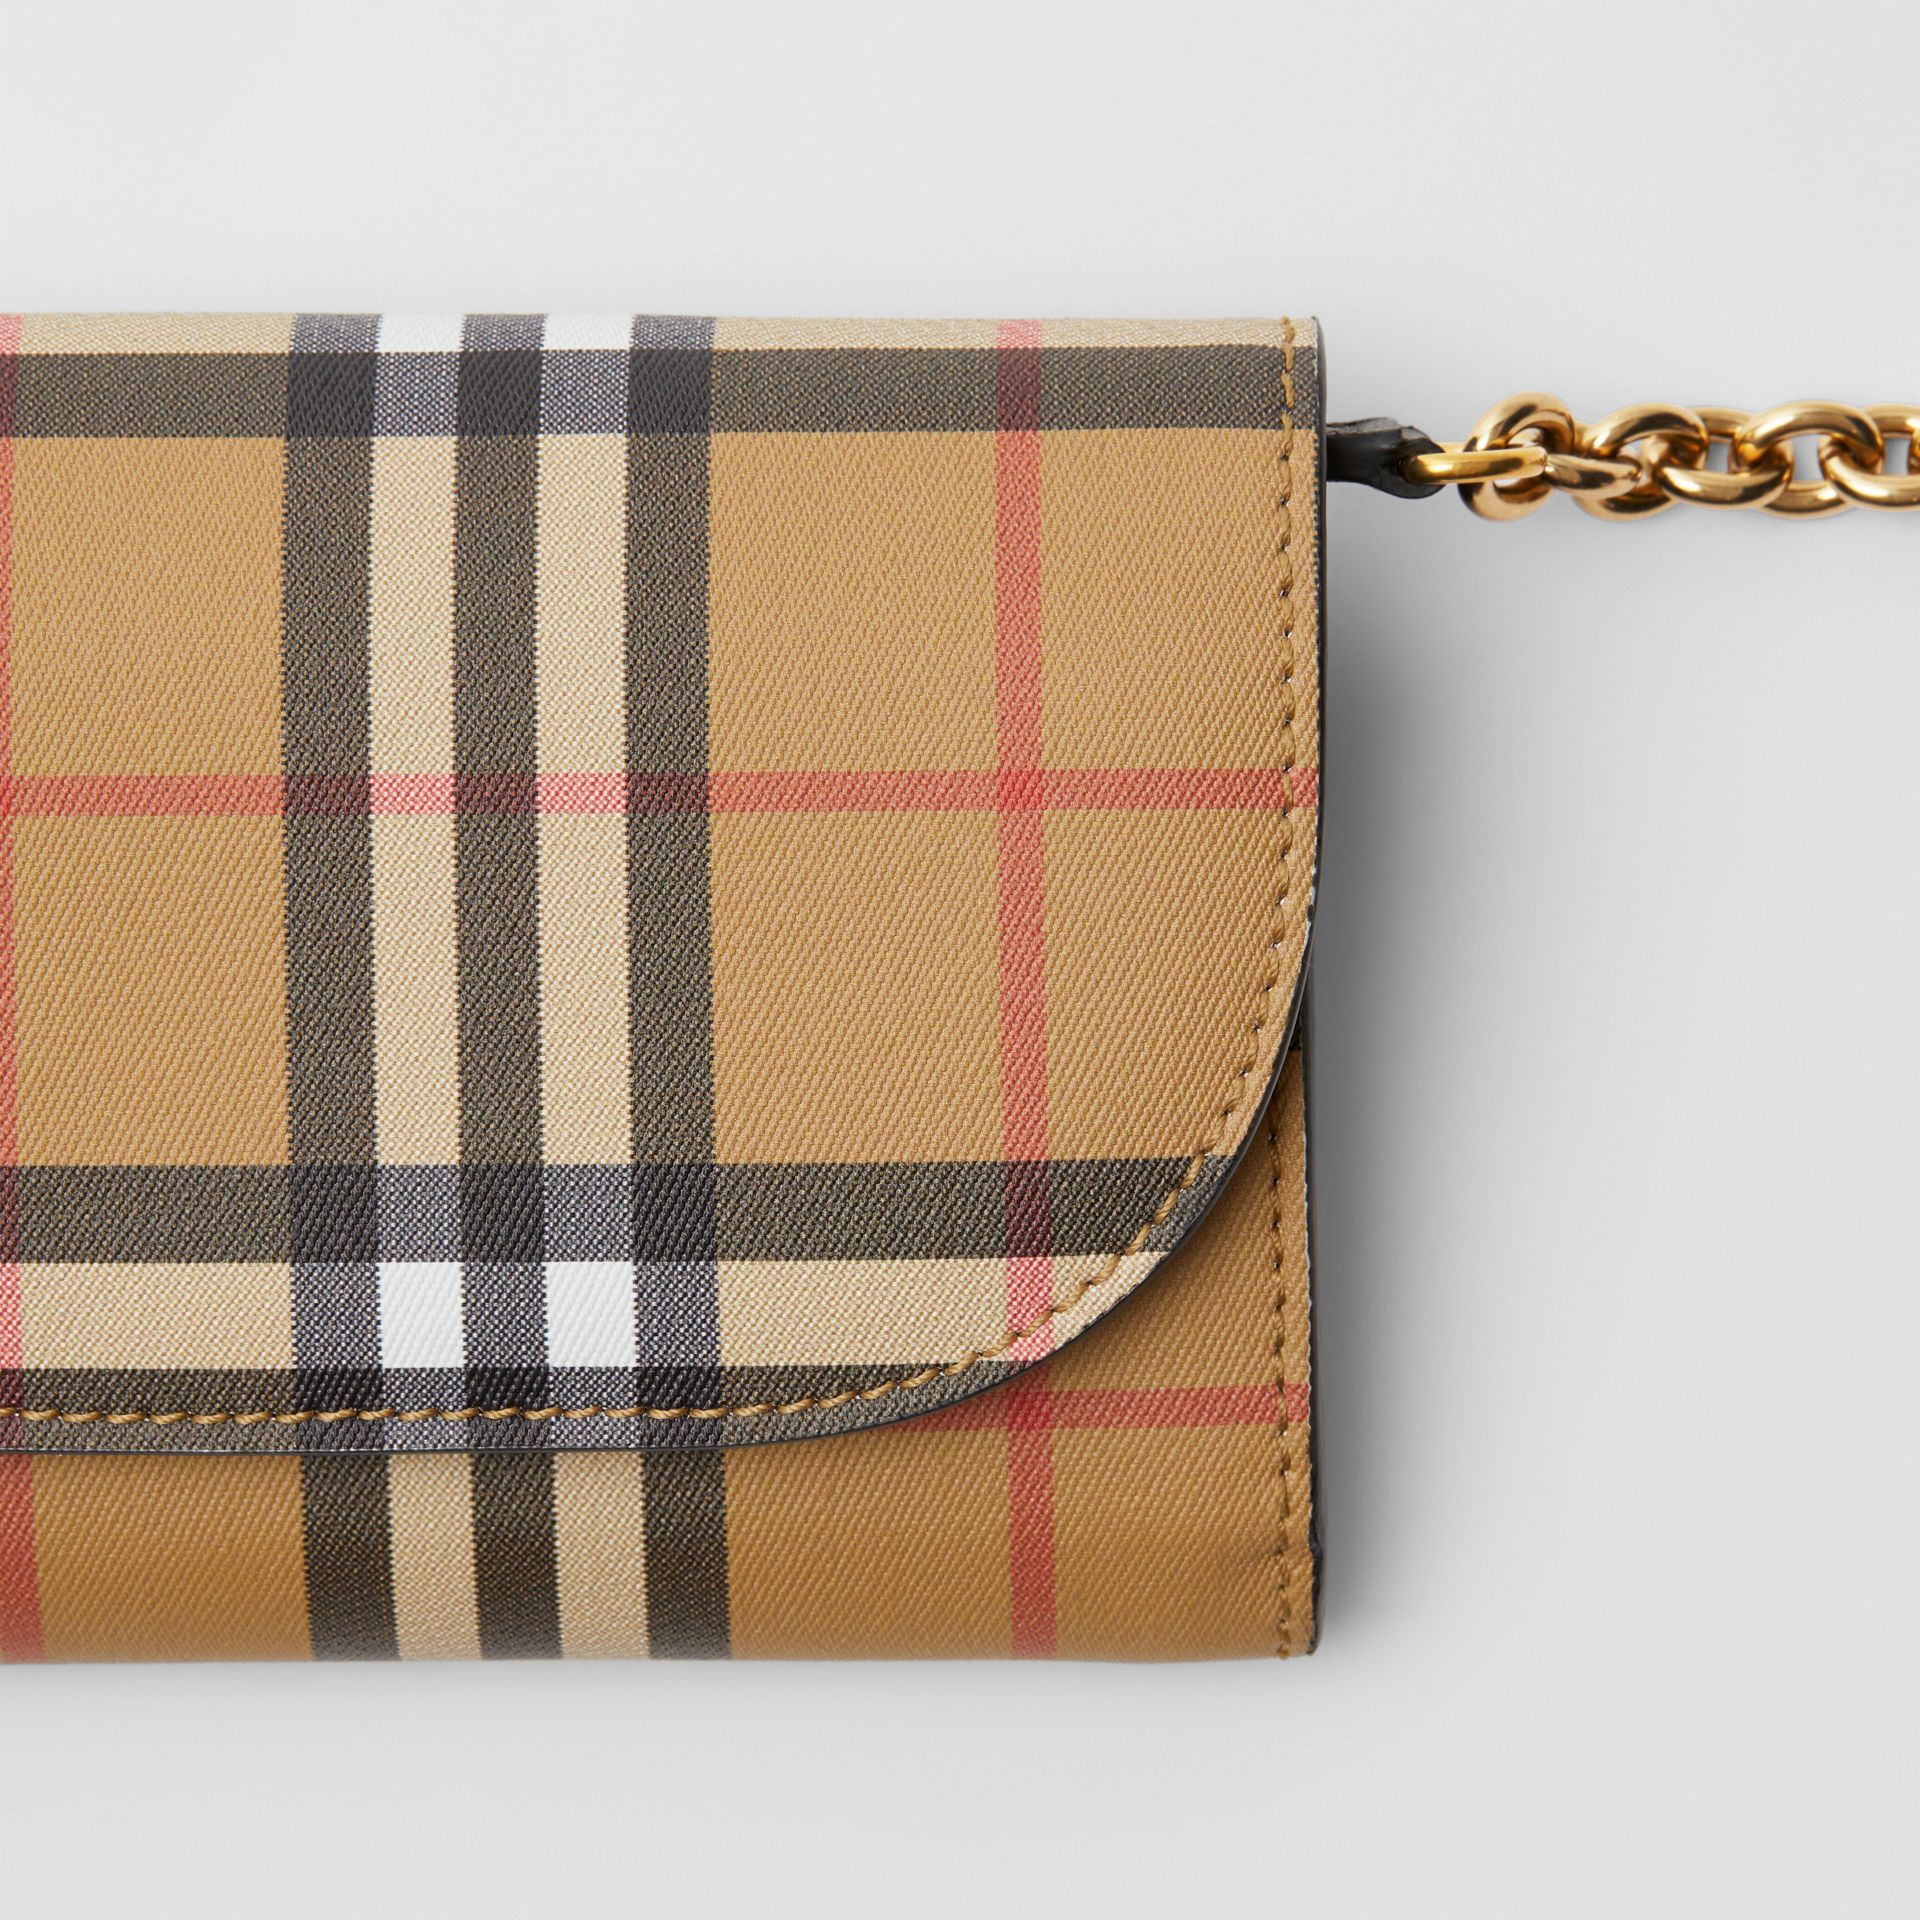 Vintage Check and Leather Wallet with Chain in Black - Women | Burberry Canada - gallery image 1